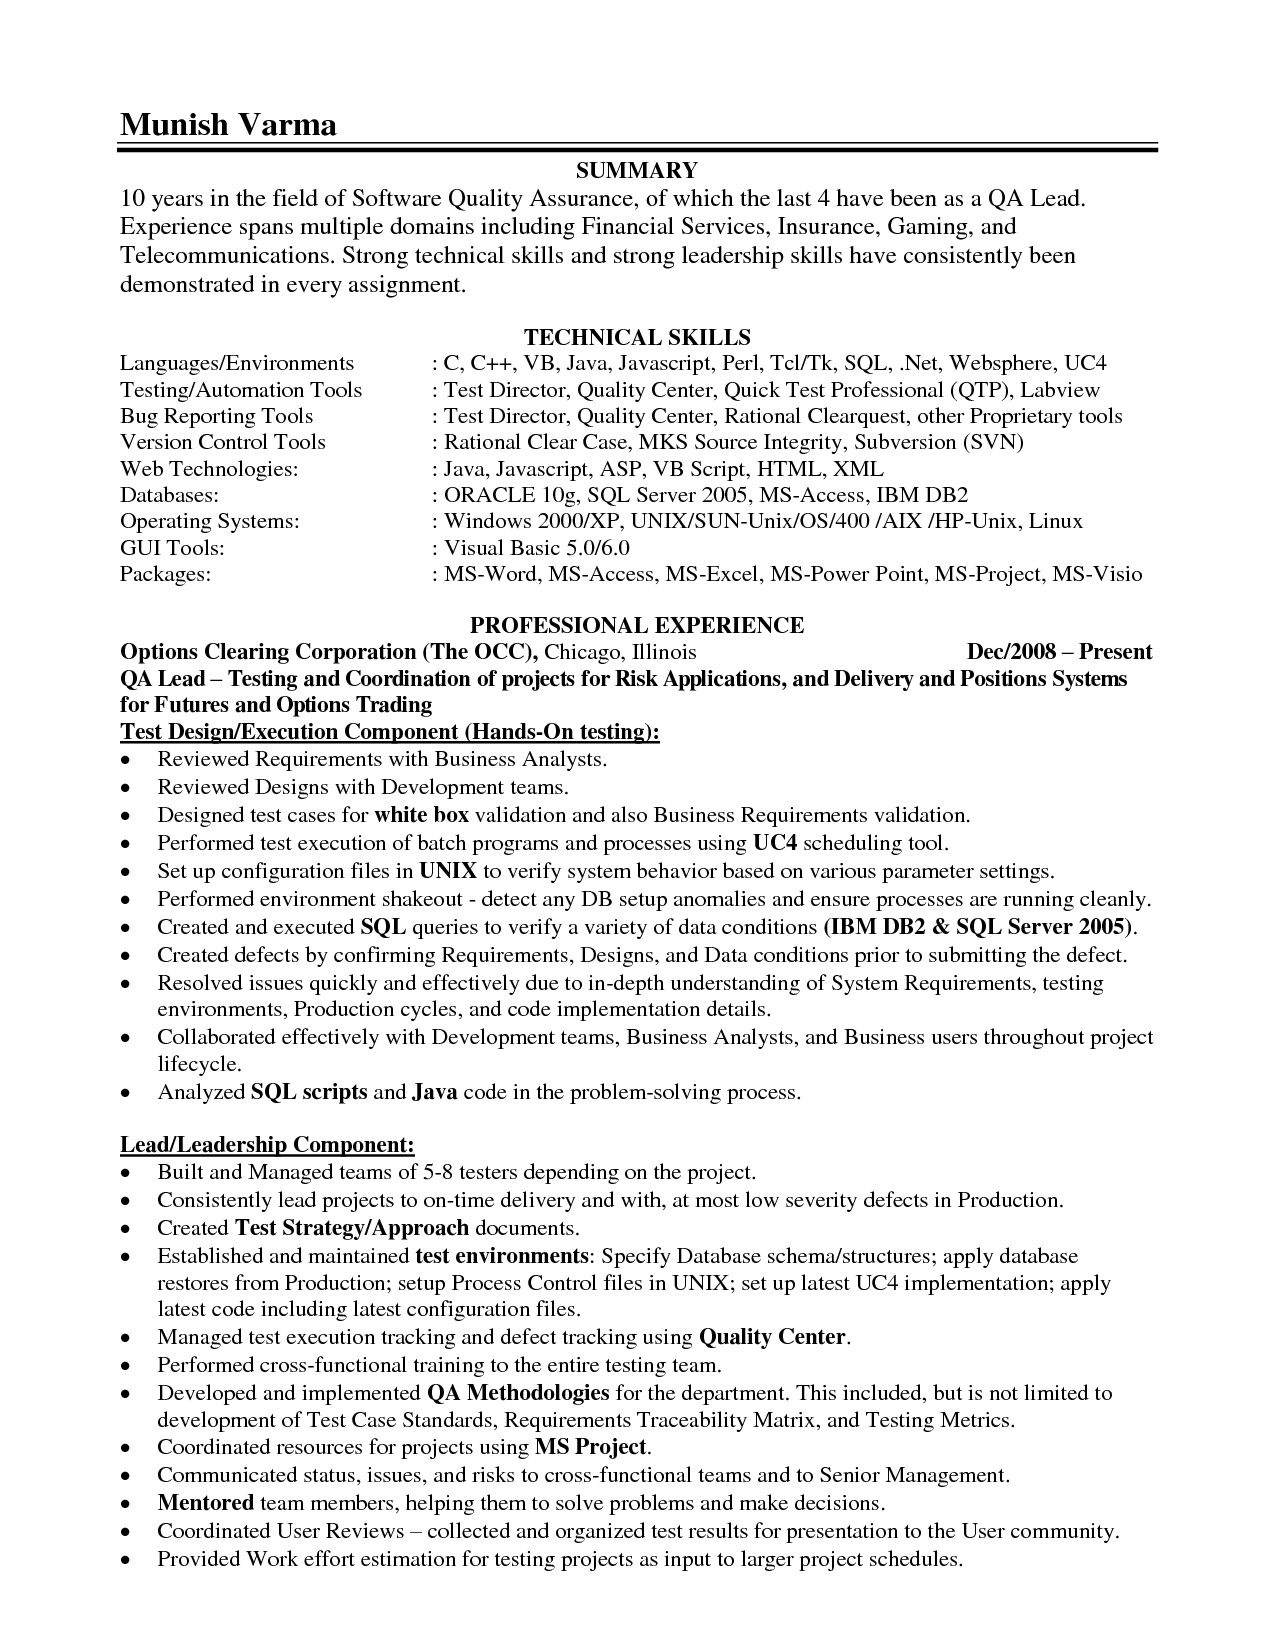 Resume Leadership Skills Examples 7 How To Describe Leadership Skills On Resume  Resume How To List .  List Of Technical Skills For Resume